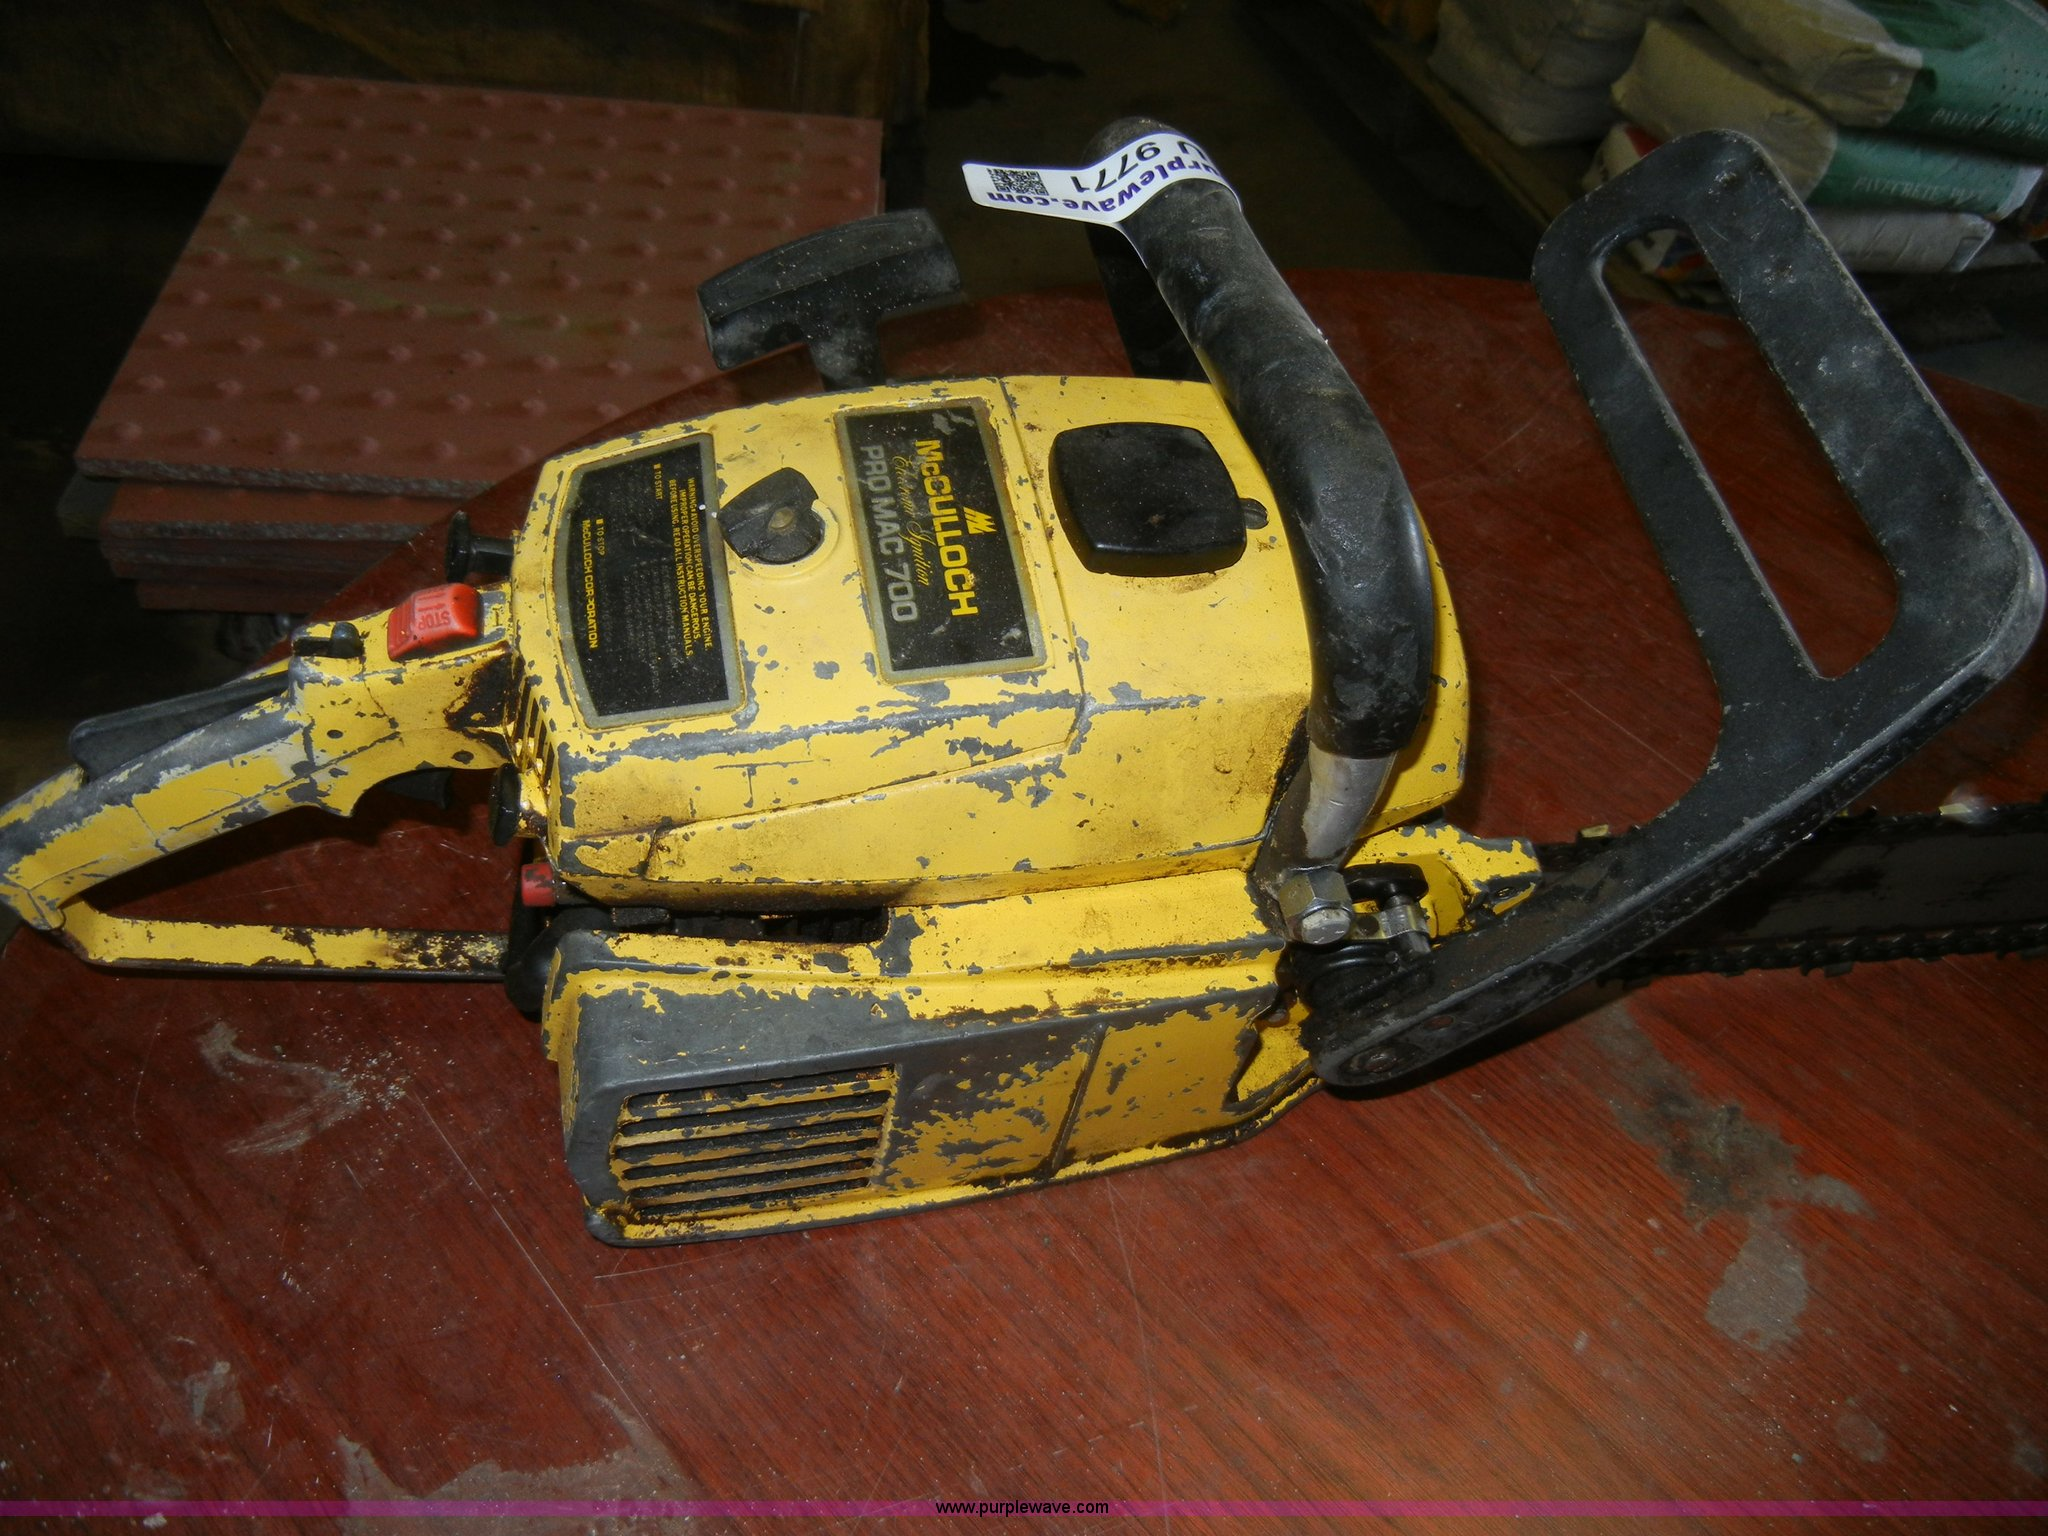 ... McCulloch Pro Mac 700 chainsaw Full size in new window ...